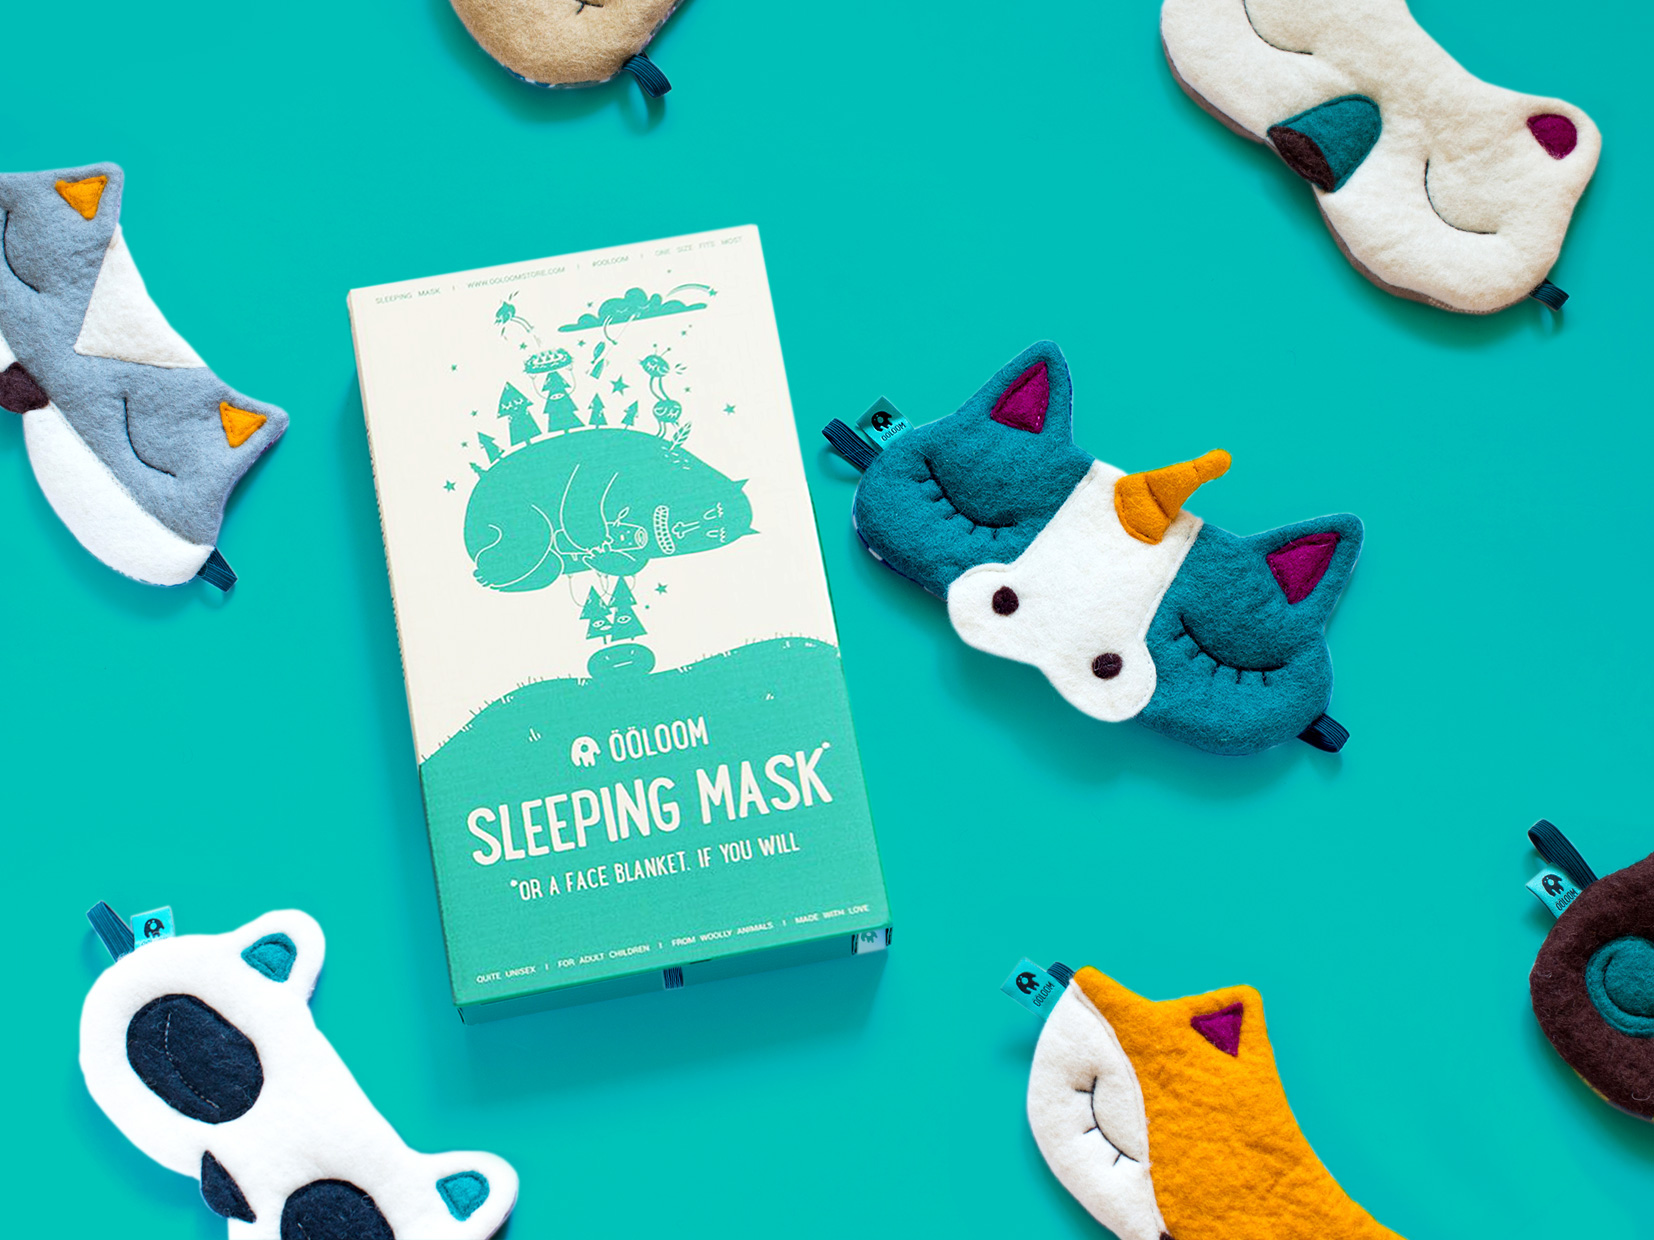 Variety of Ööloom sleeping masks, 2016.